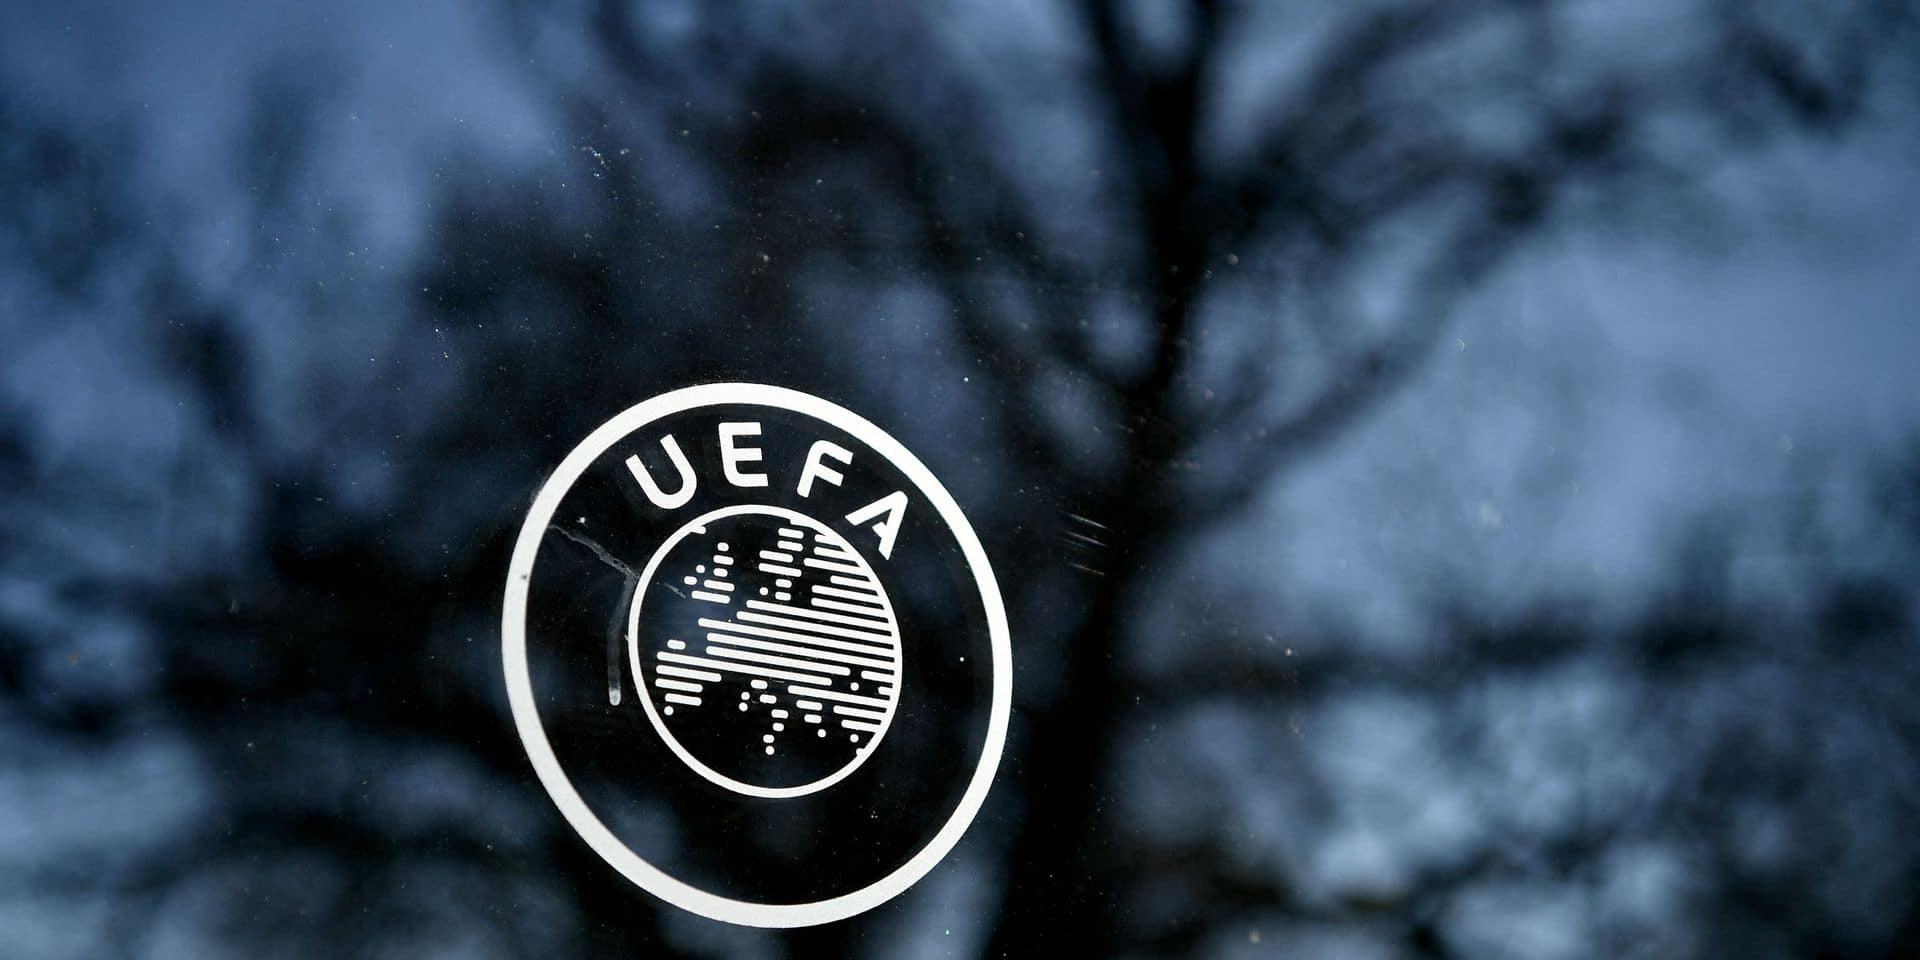 L'UEFA menace d'exclure les clubs participant à la Super League